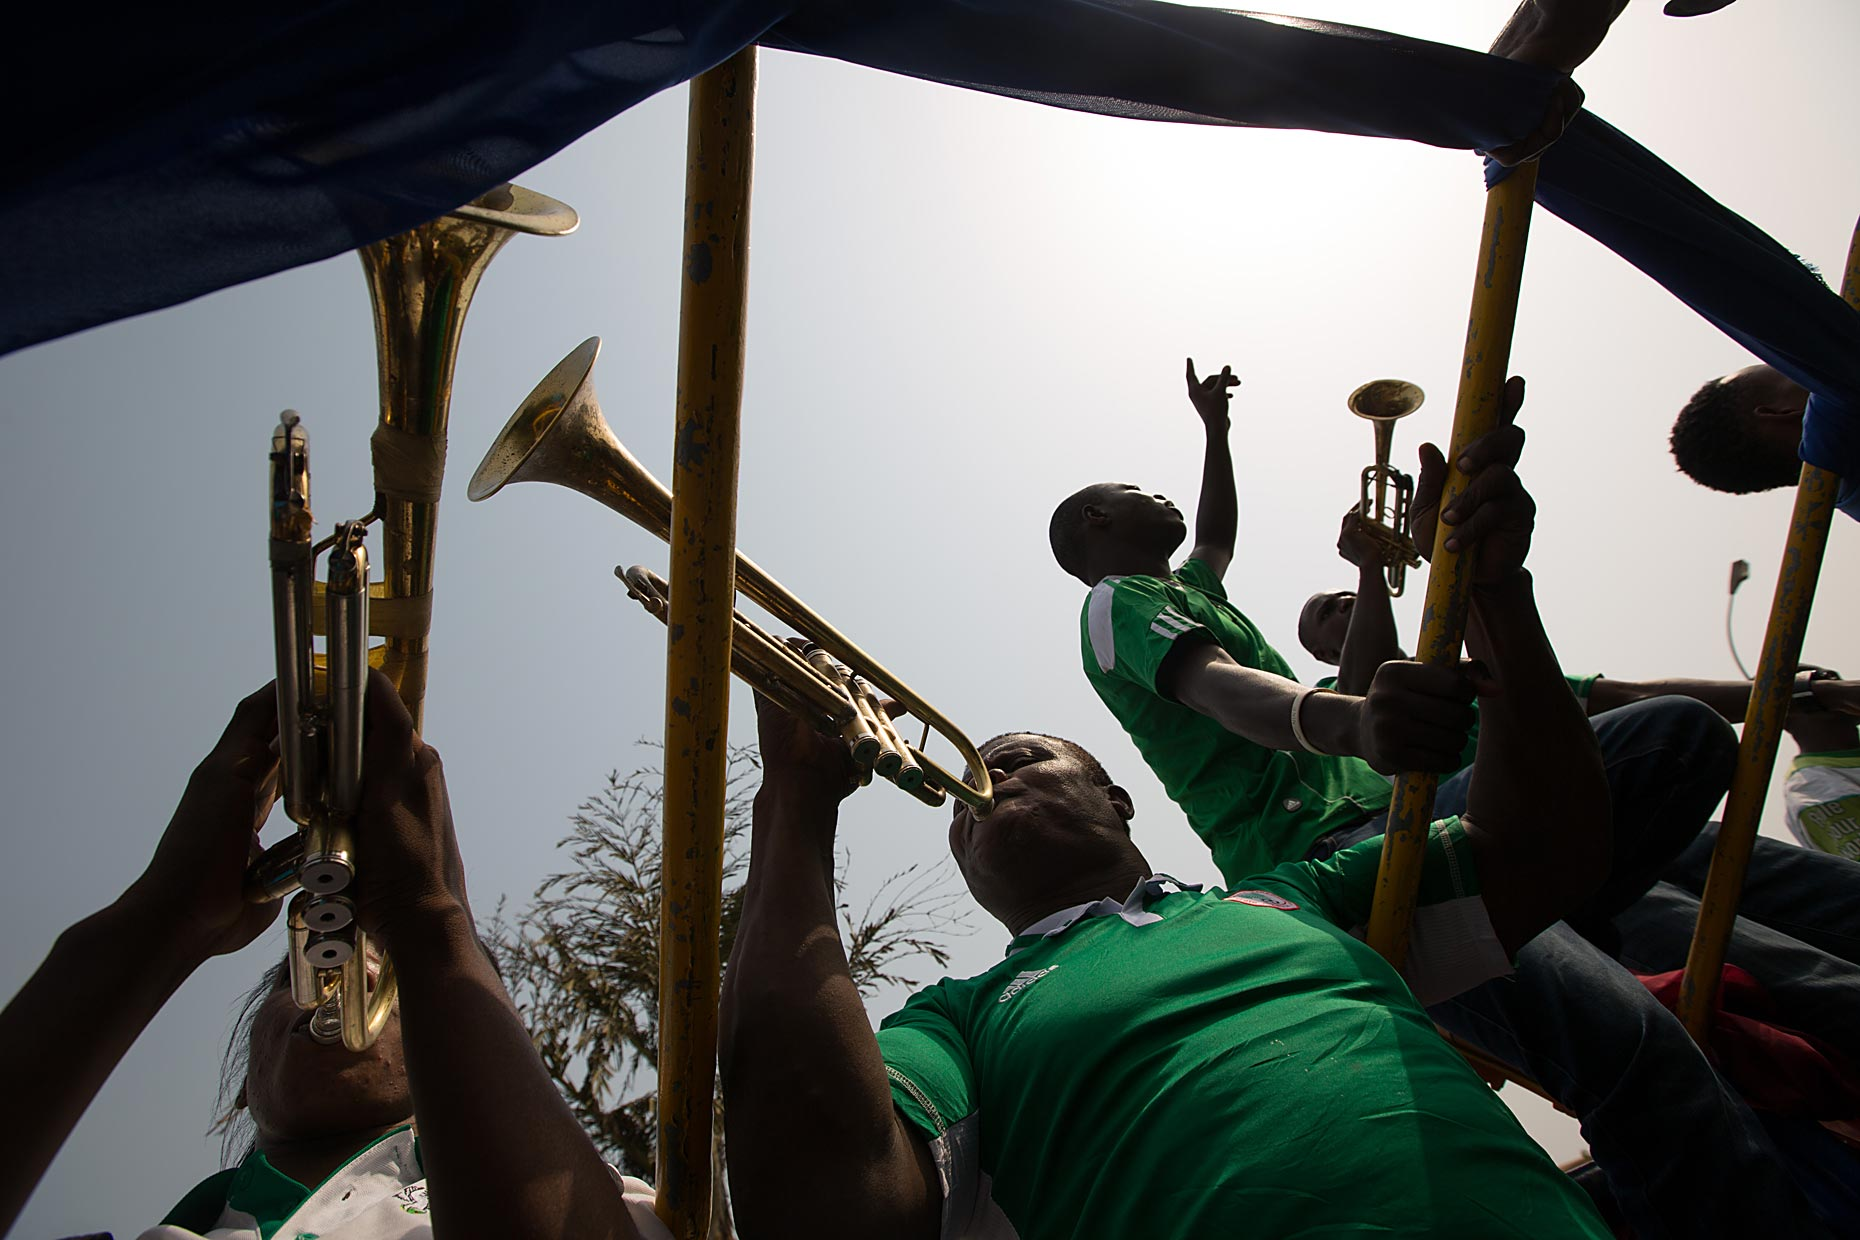 Trumpet players in Nigeria, by Scotland photographer